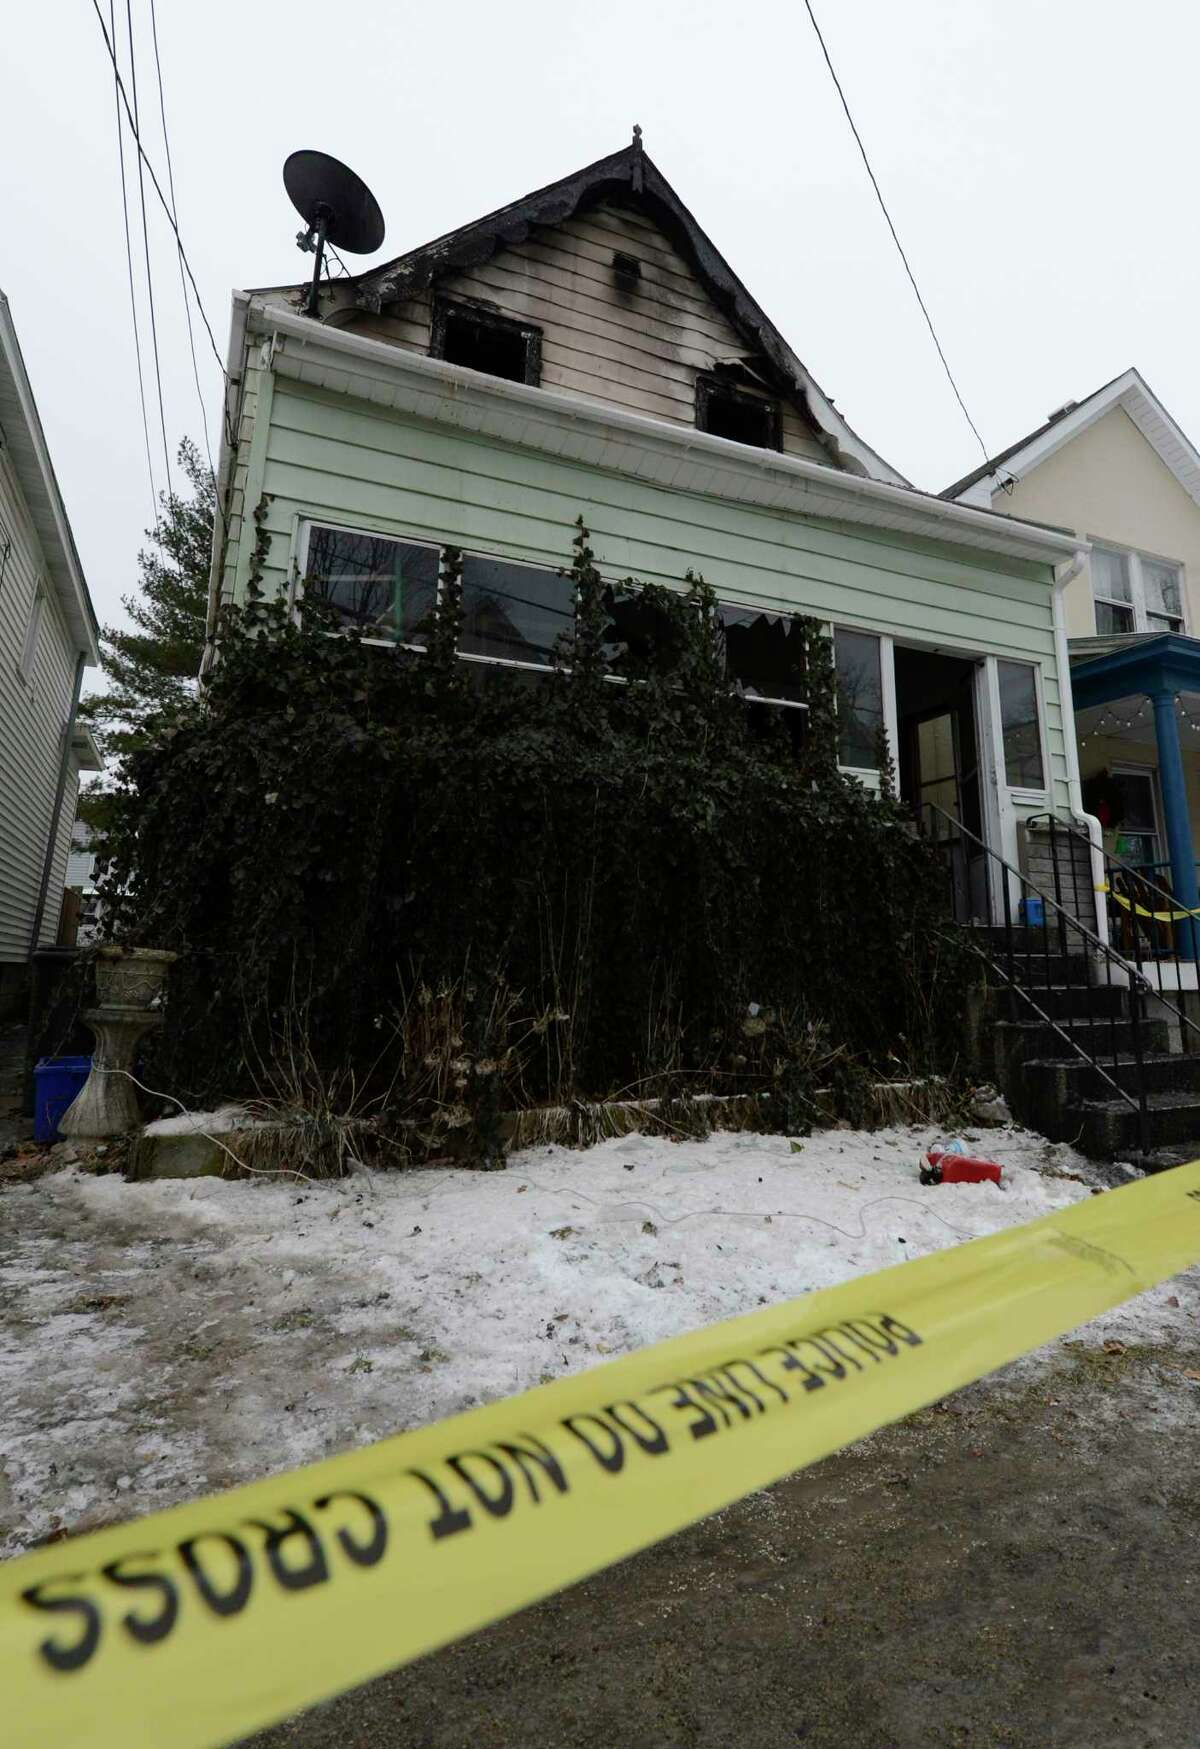 12 Arcadia Avenue Jan. 28, 2013 after a fire struck the home the previous morning in Albany, N.Y. A body was found in the building after the fire was put out prompting the police presence. (Skip Dickstein/Times Union)